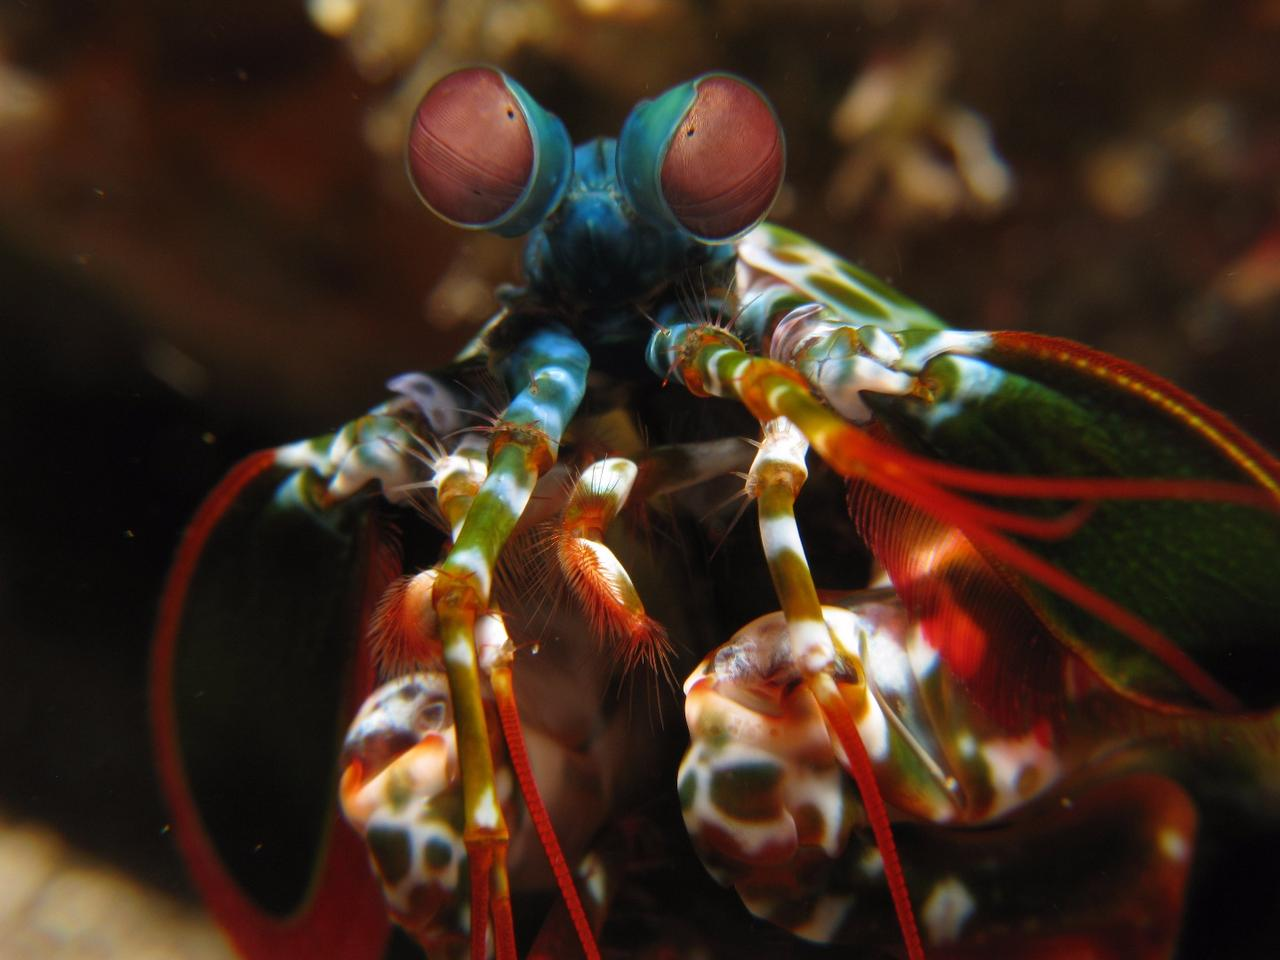 The mantis shrimp has inspired biomimetics on several fronts